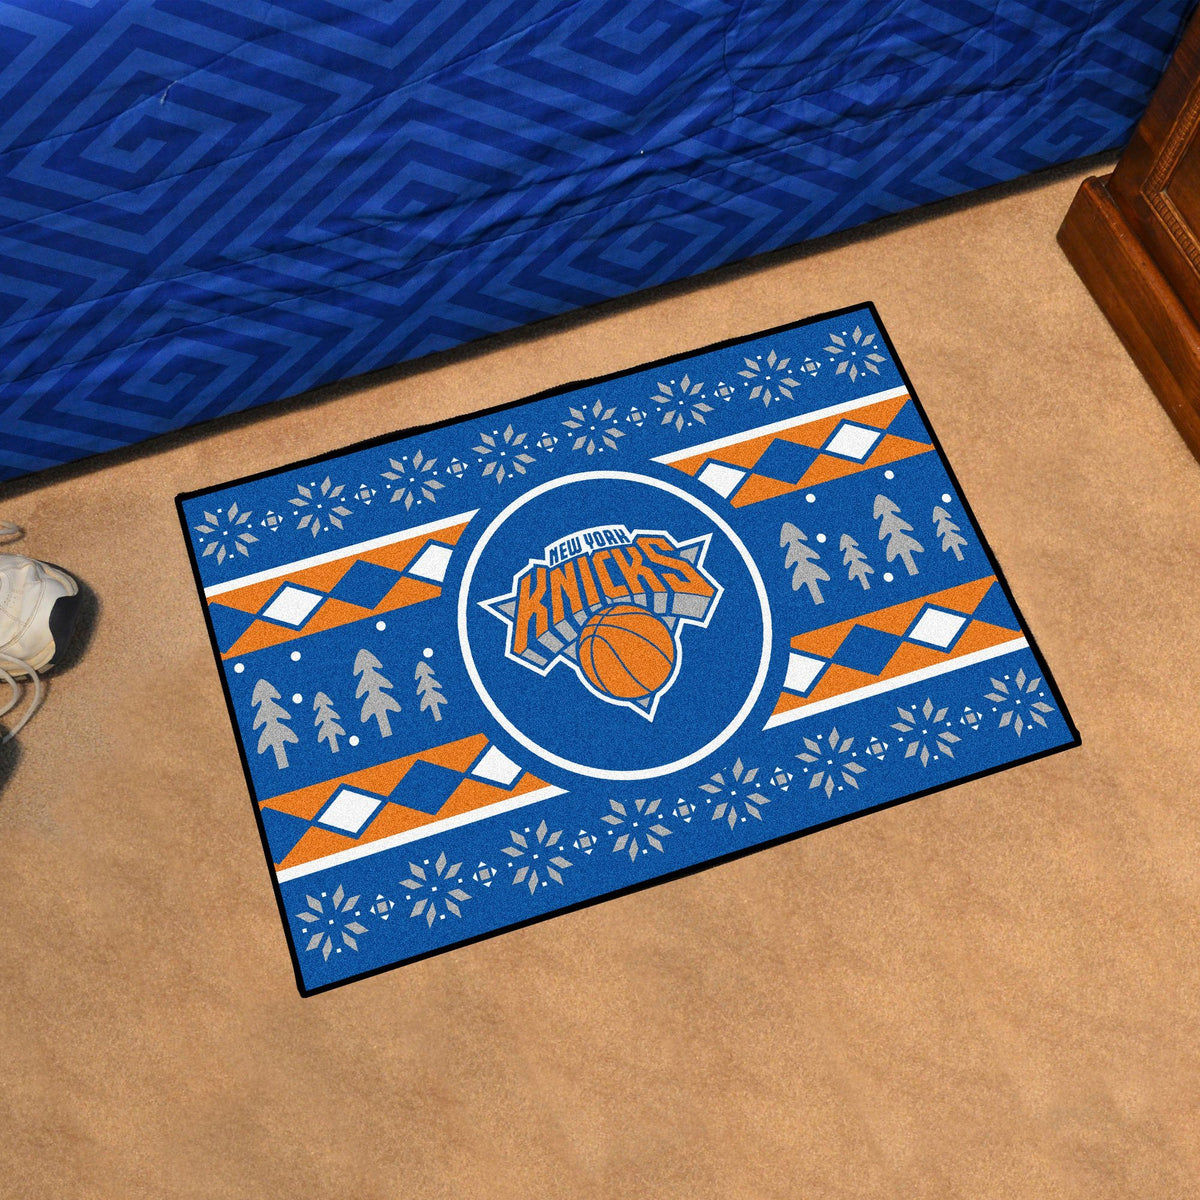 NBA - Holiday Sweater Starter Mat NBA Mats, Rectangular Mats, Holiday Sweater Starter Mat, NBA, Home Fan Mats New York Knicks